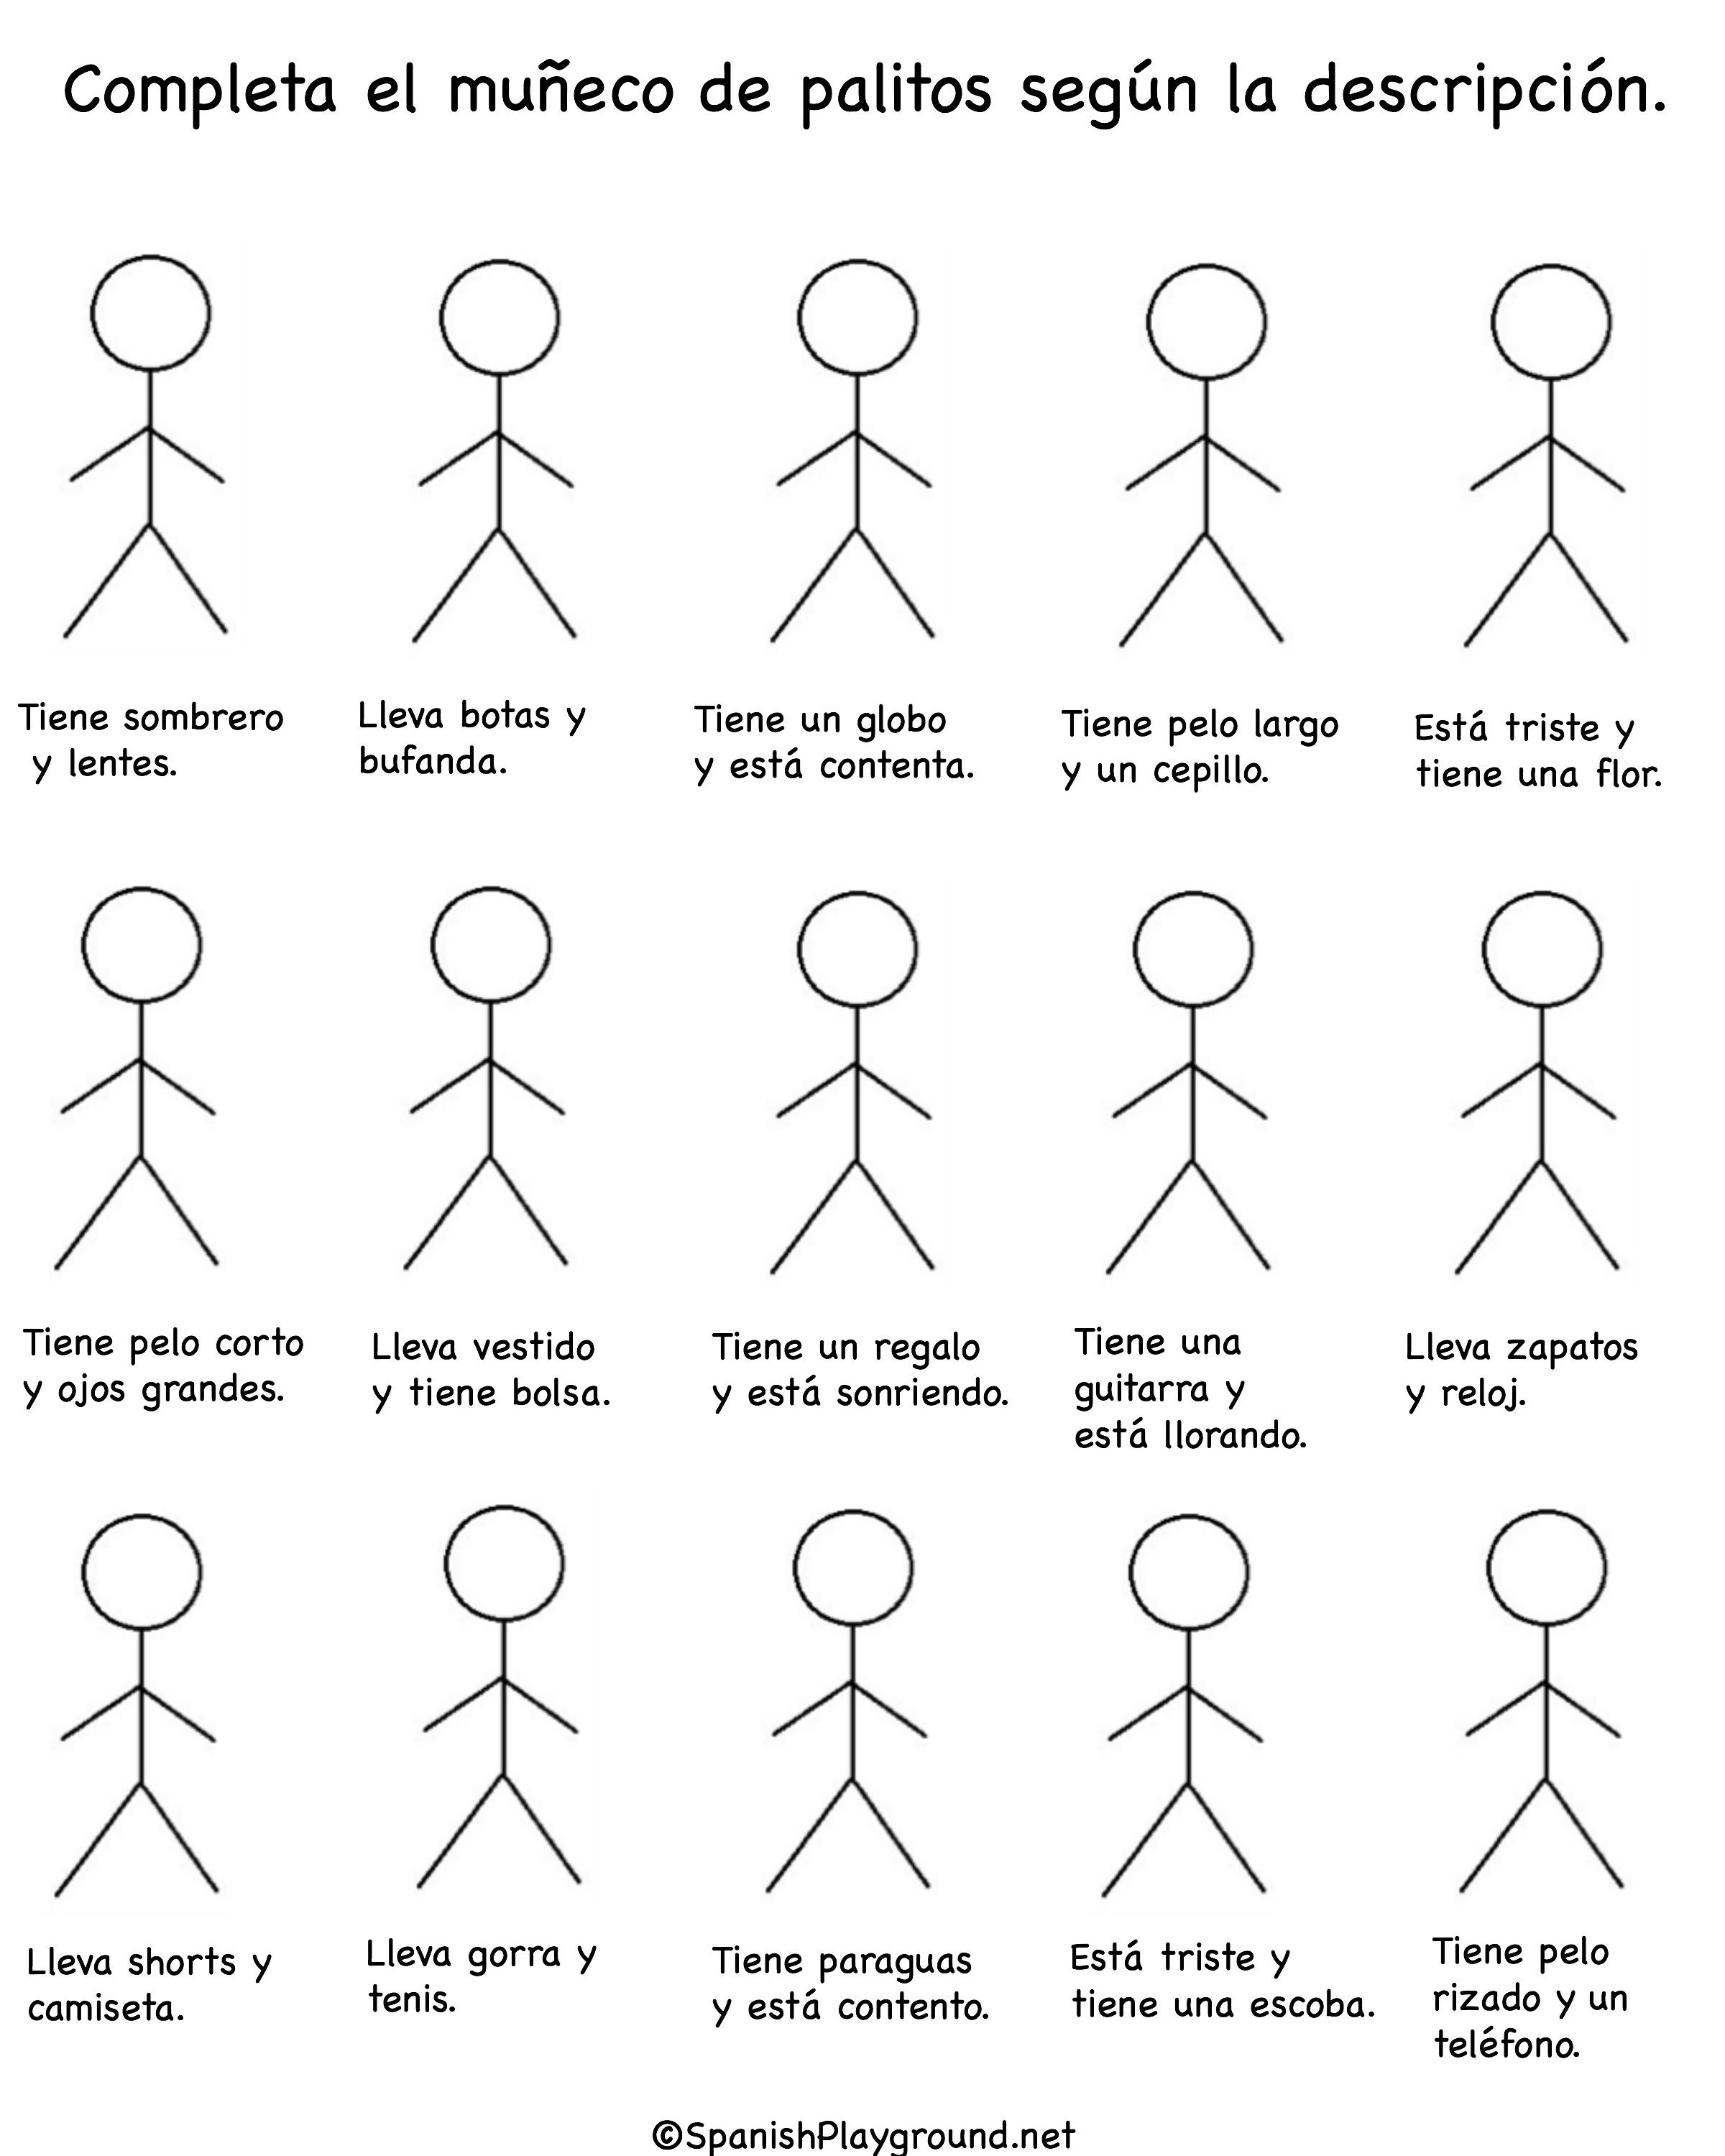 Complete The Stick Man According To The Given Instructions School